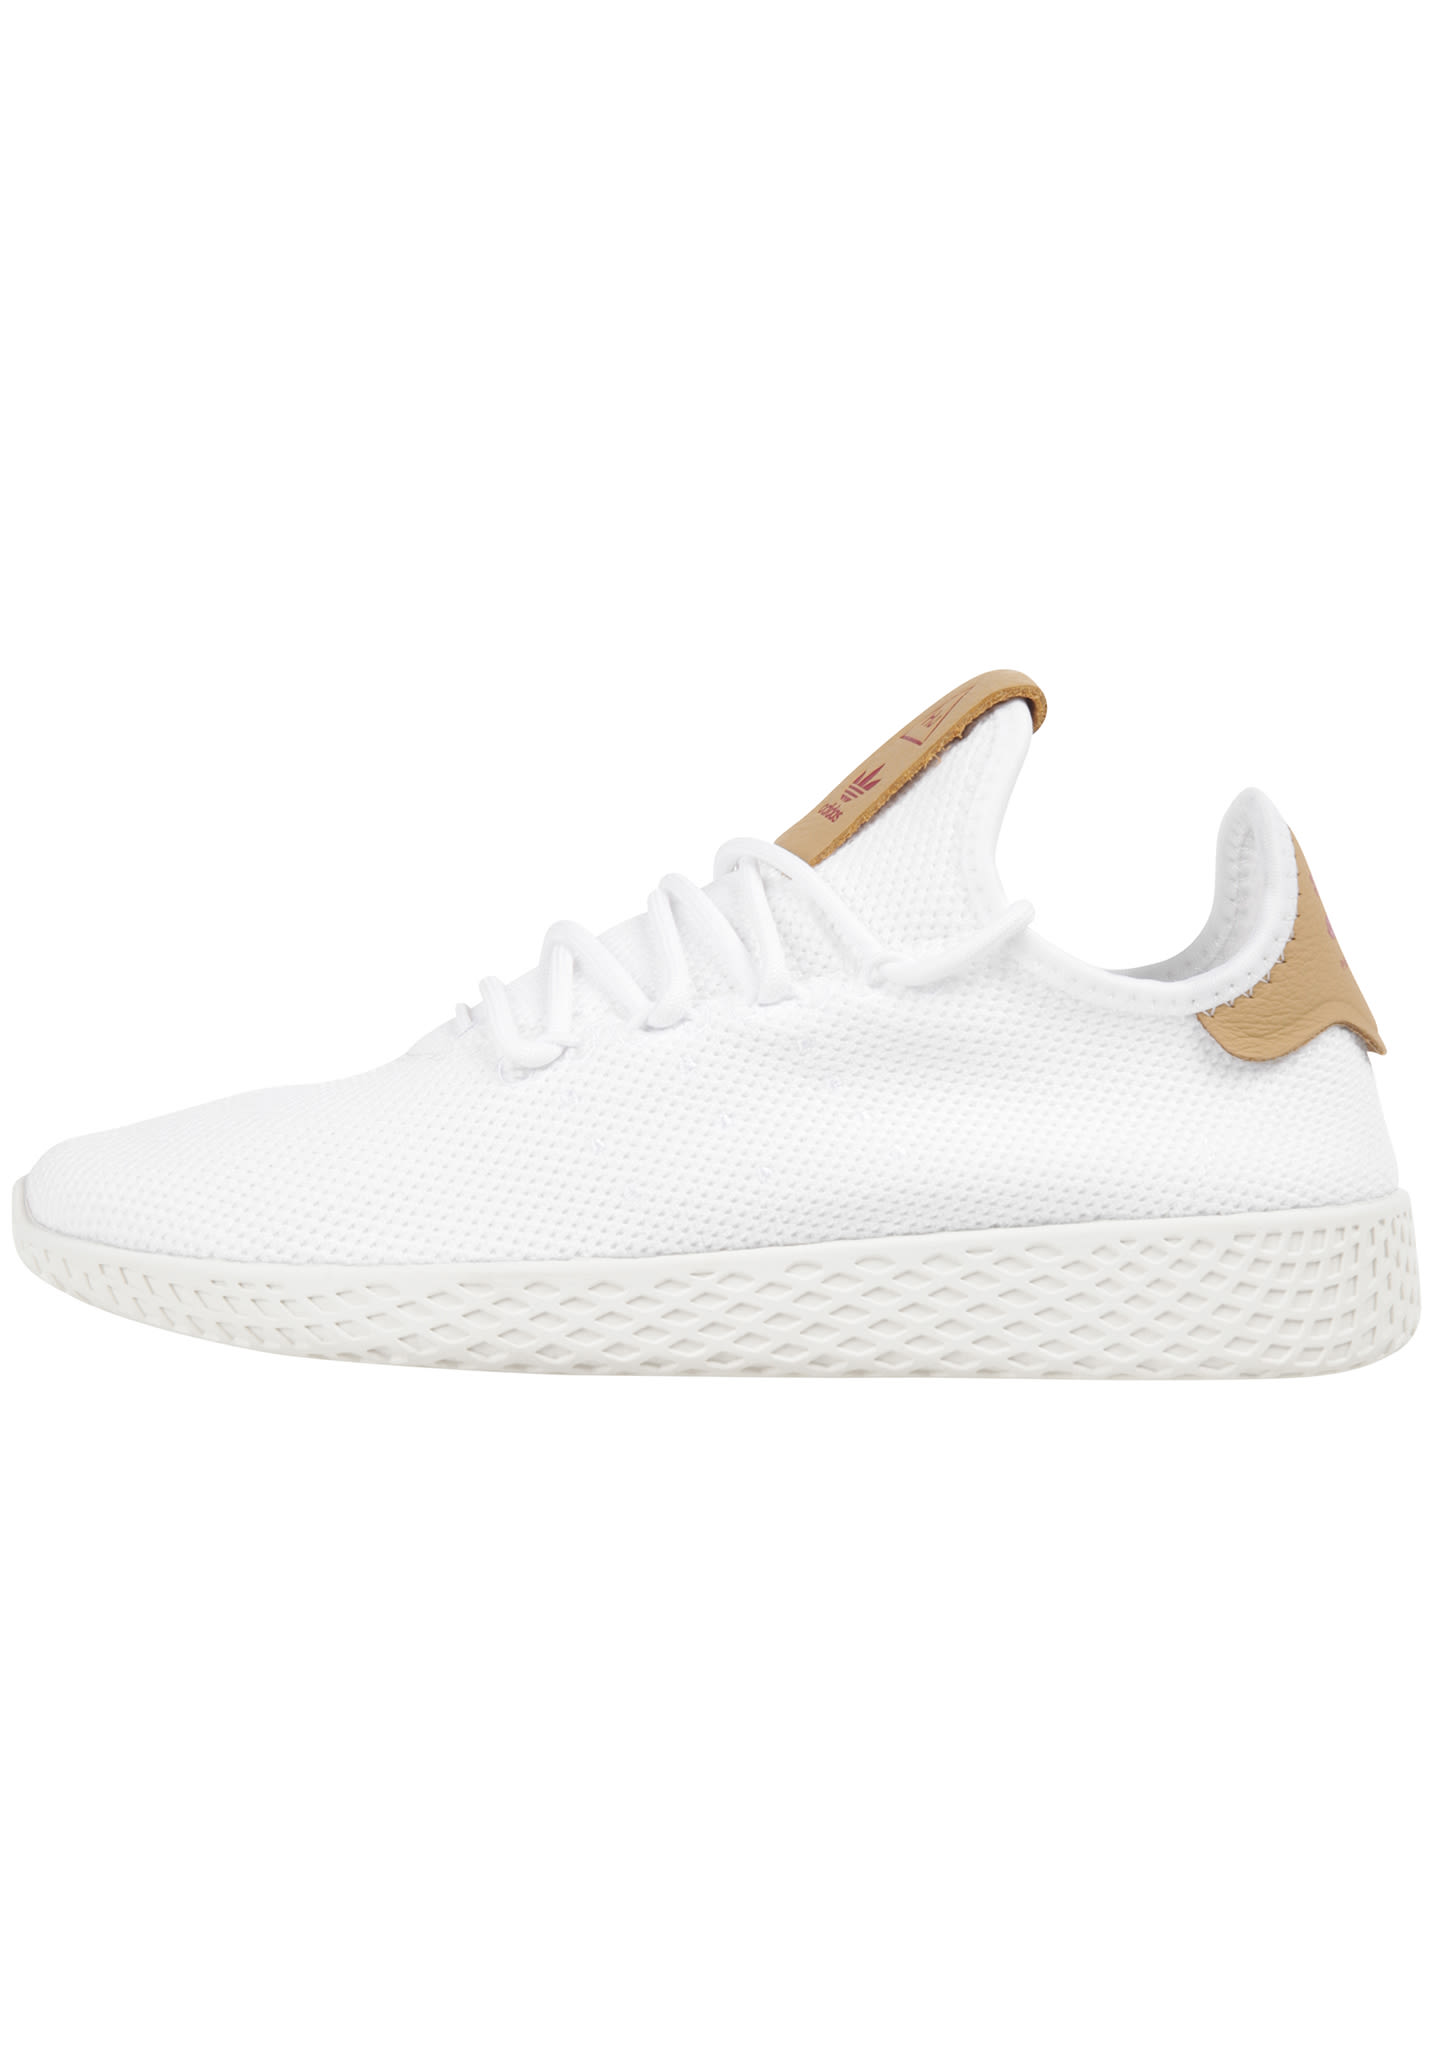 ADIDAS ORIGINALS Pharrell Williams Tennis HU - Baskets pour Femme - Blanc